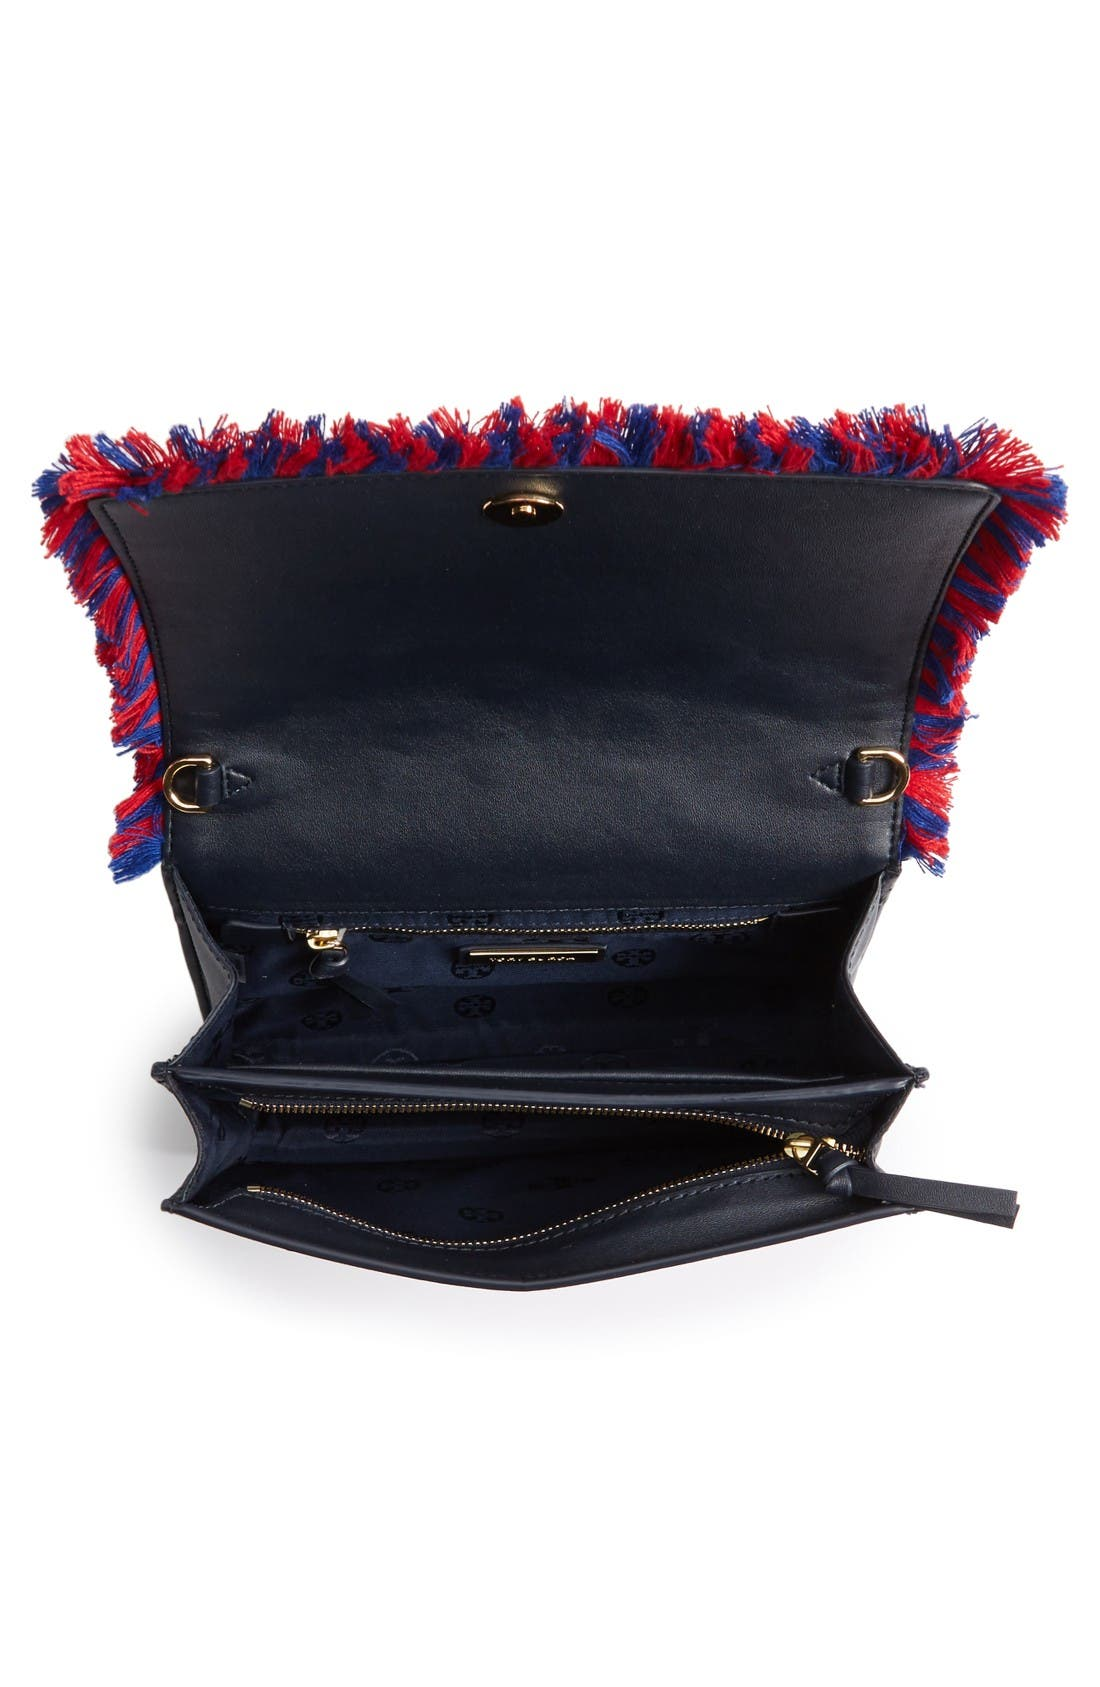 Alternate Image 3  - Tory Burch Embroidered Floral Crossbody Bag